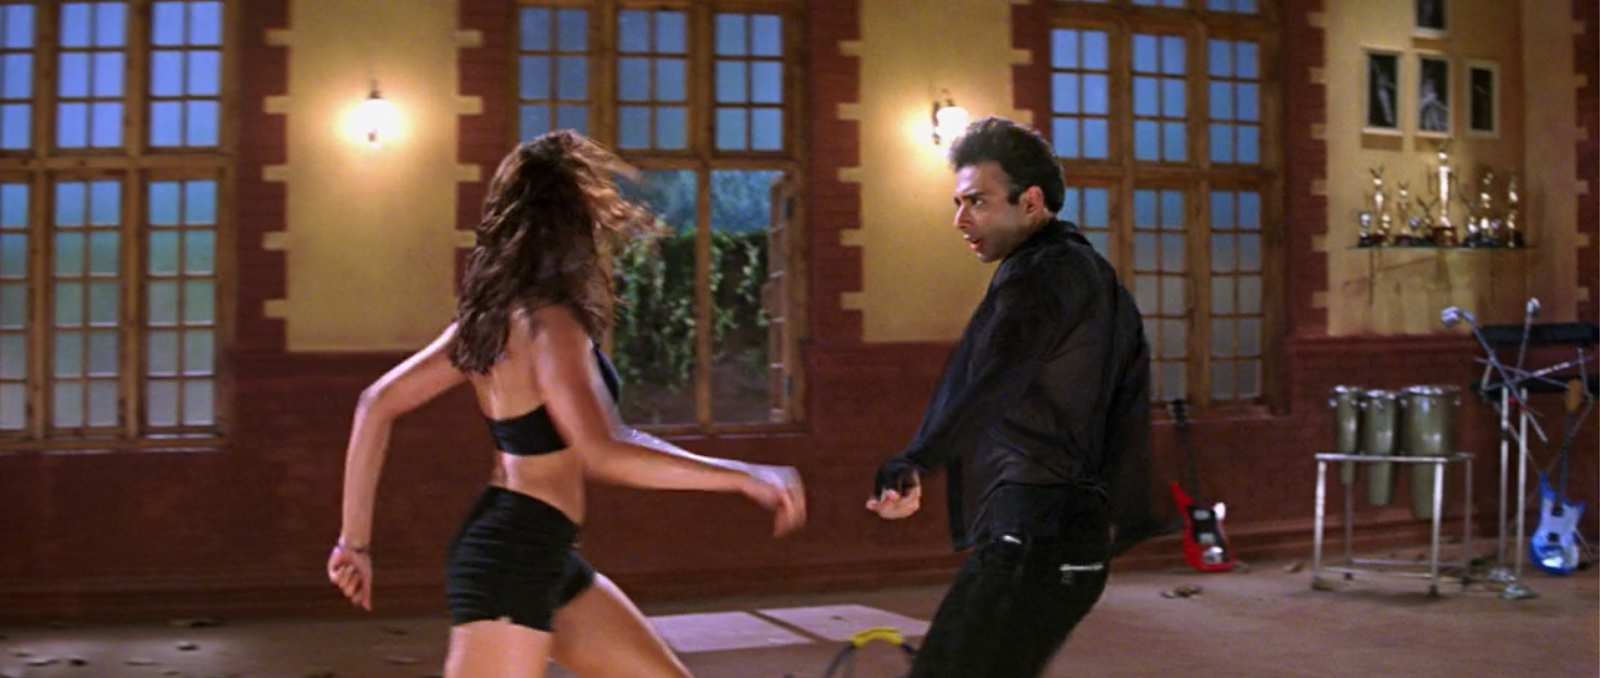 In Mohabbatein, Shamitha Shetty is harassed non-stop by Uday Chopra. (Mohabbatein)